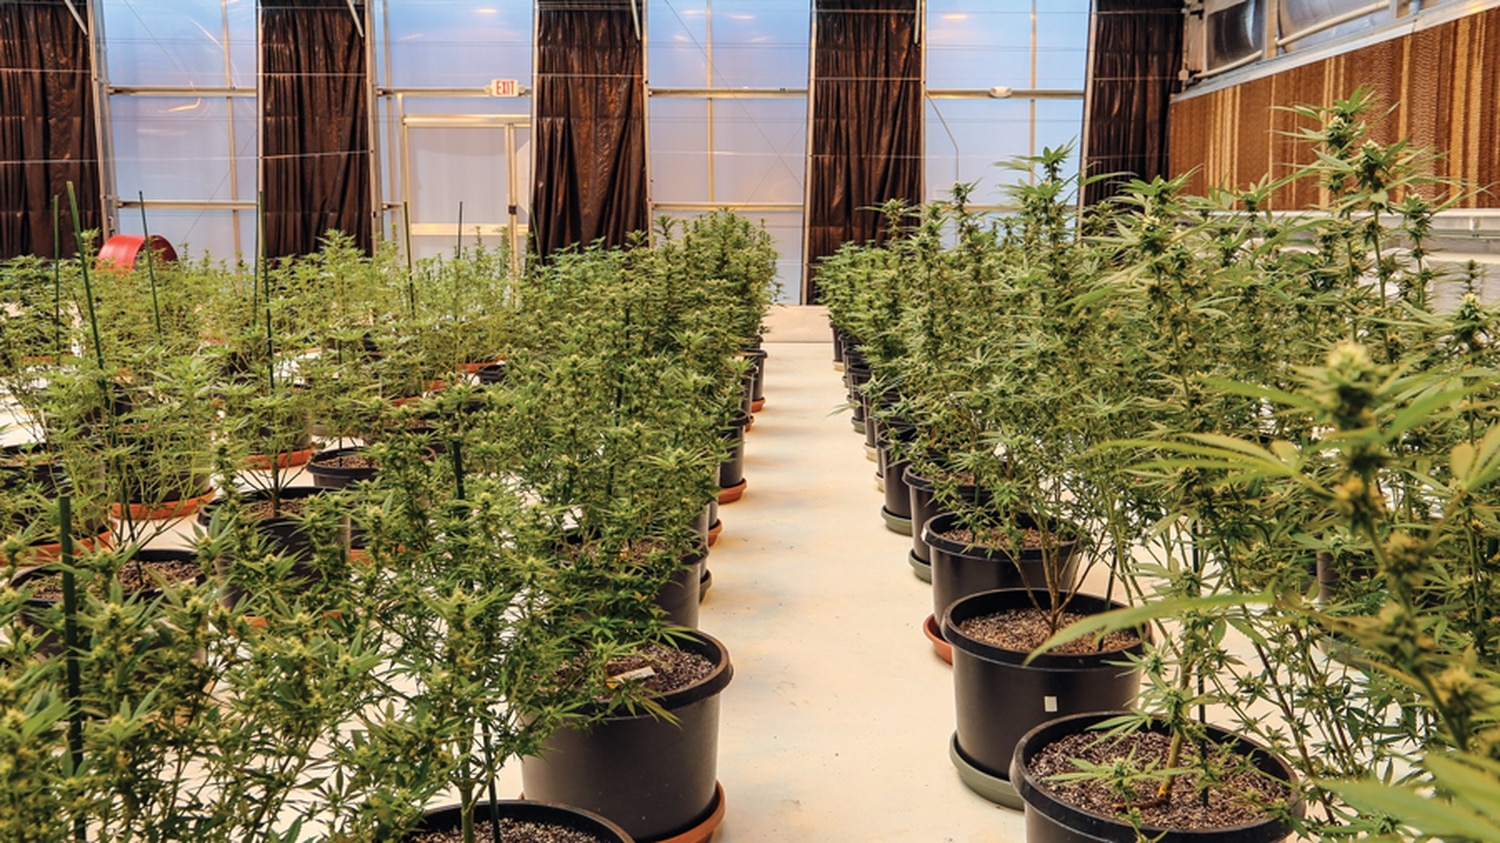 Cannabis for New Mexico patients has been limited by plant cap that's due to change.